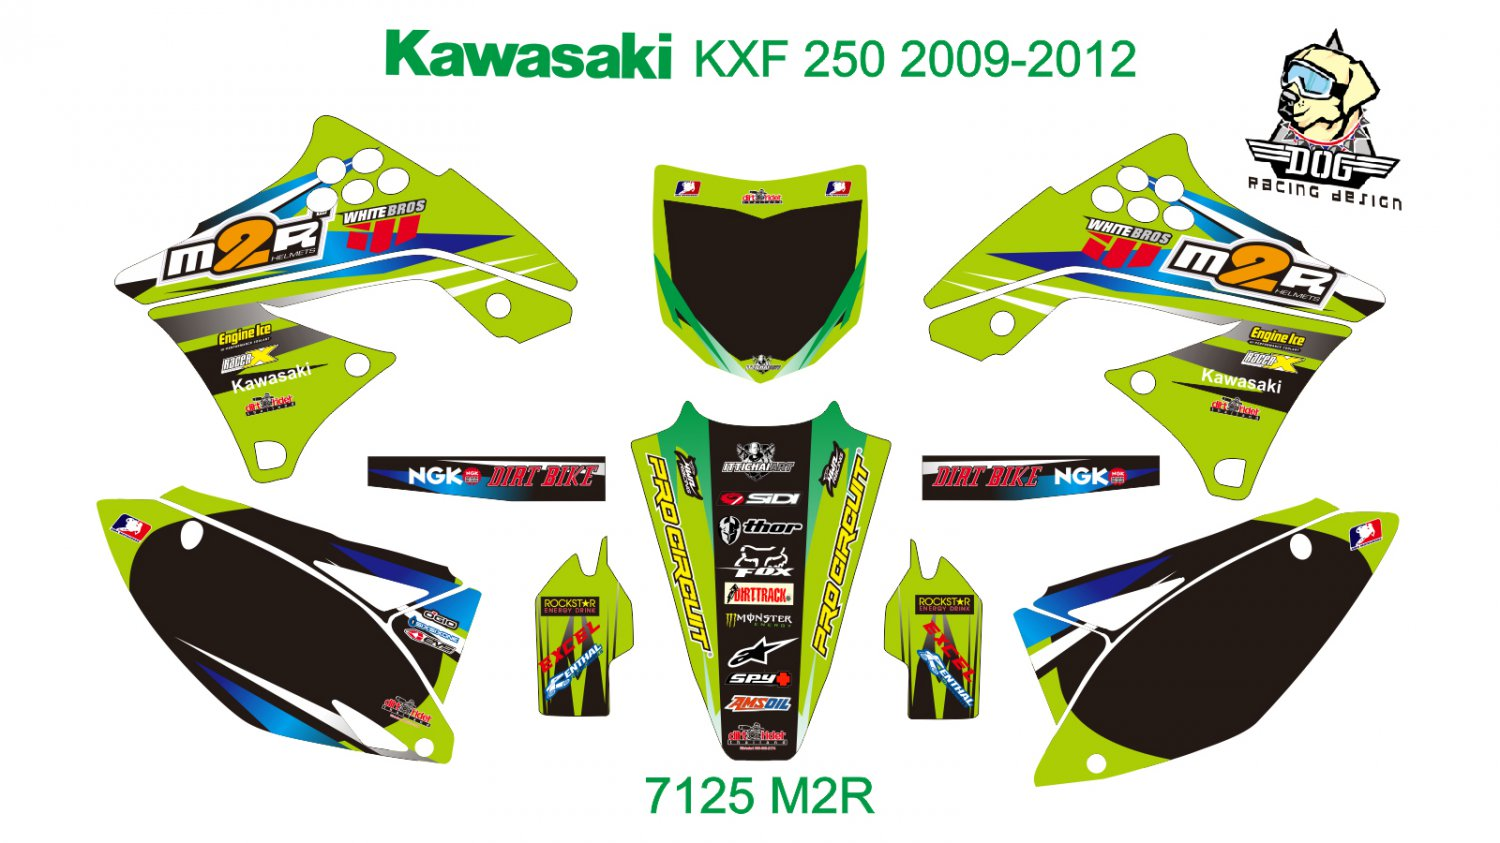 KAWASAKI KXF 250 2009-2012 GRAPHIC DECAL KIT CODE.7125